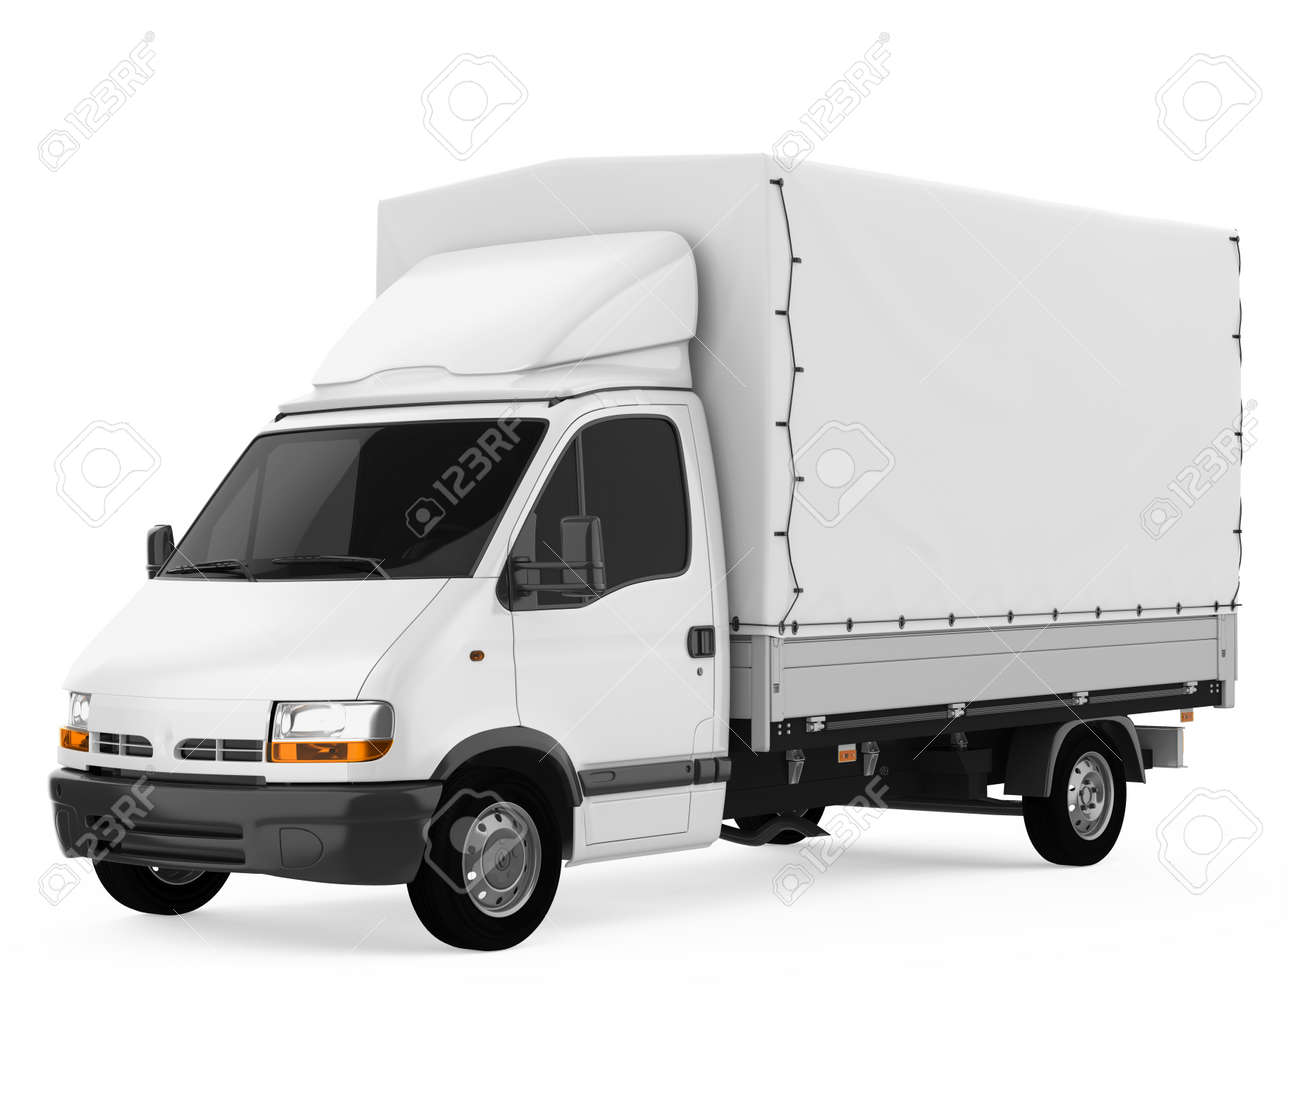 Delivery Truck Isolated - 169921484